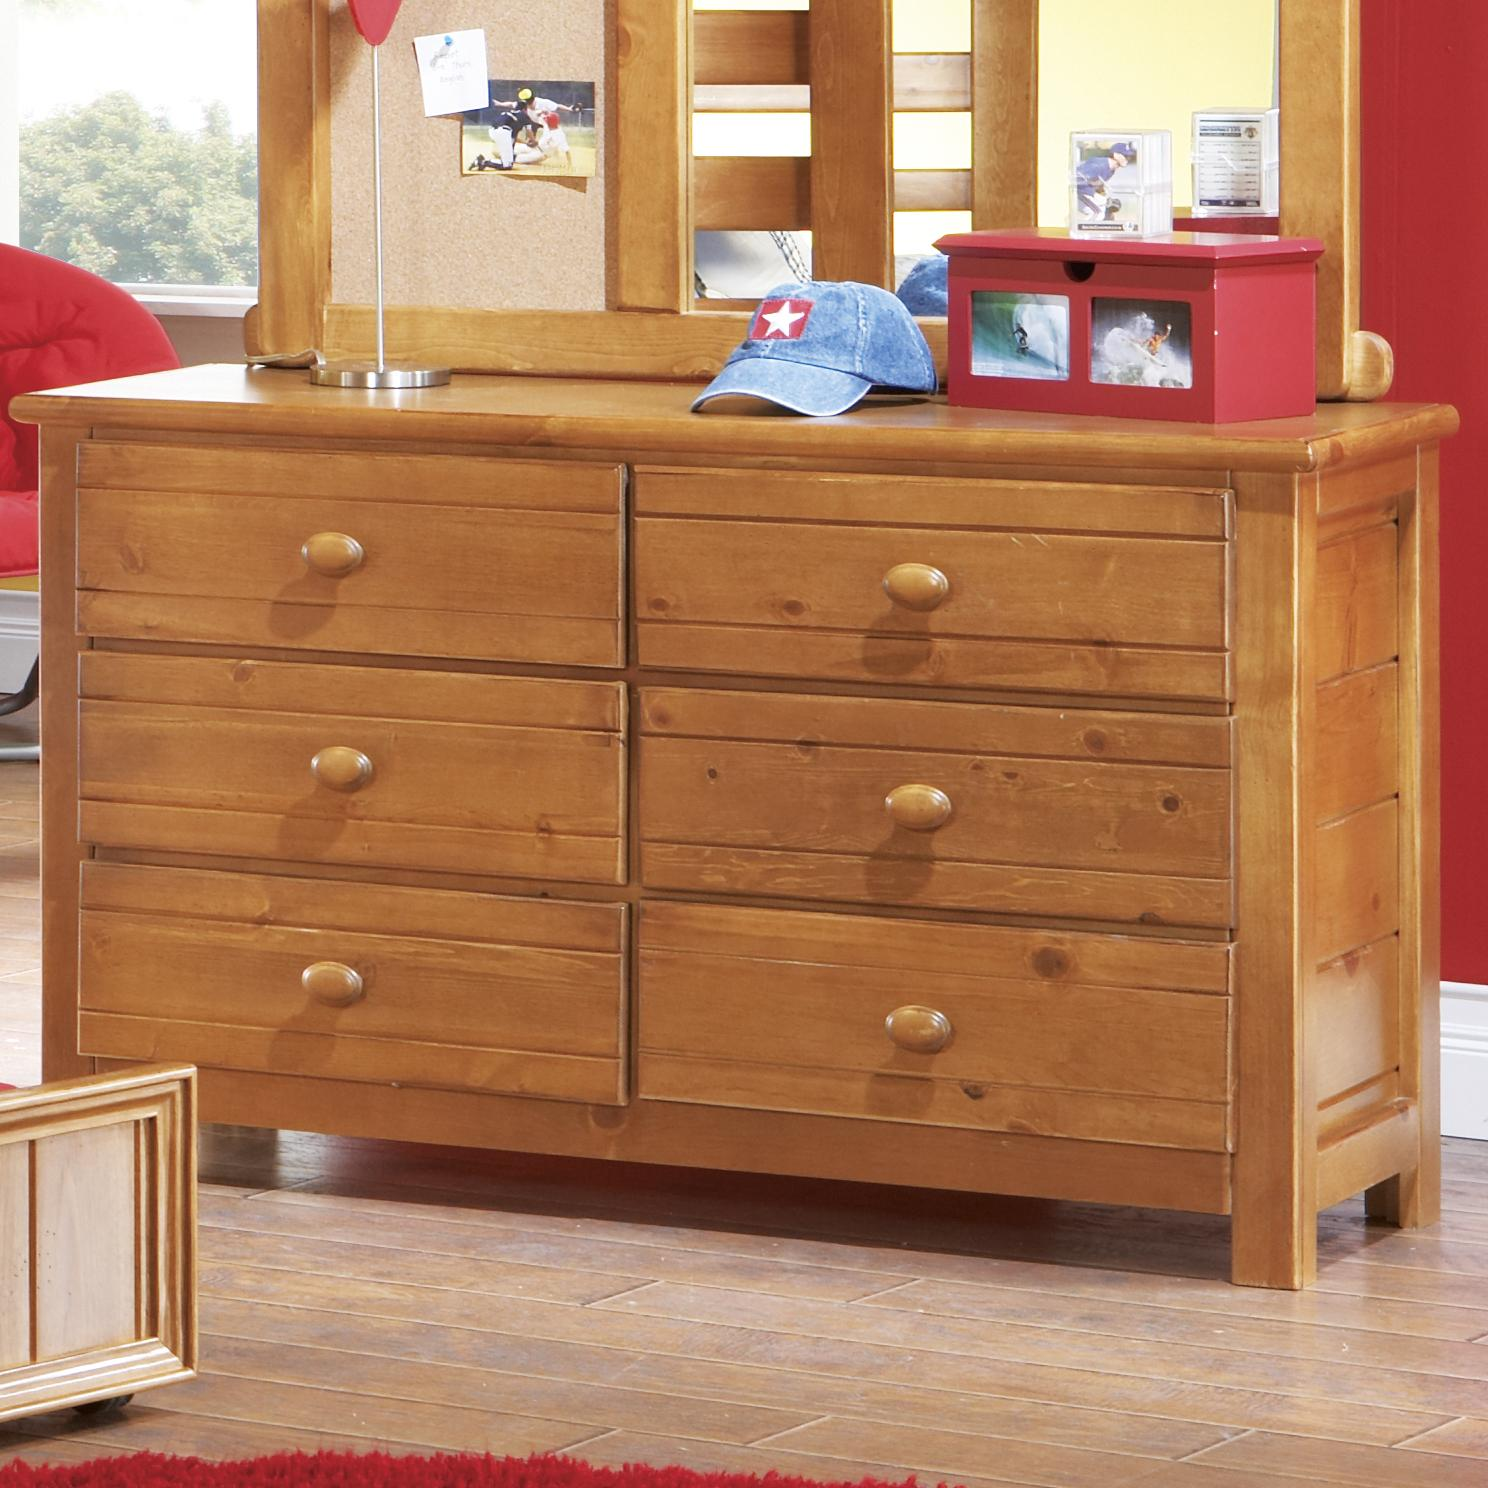 Morris Home Furnishings Cisco Cisco 6 Drawer Dresser - Item Number: 90H-206